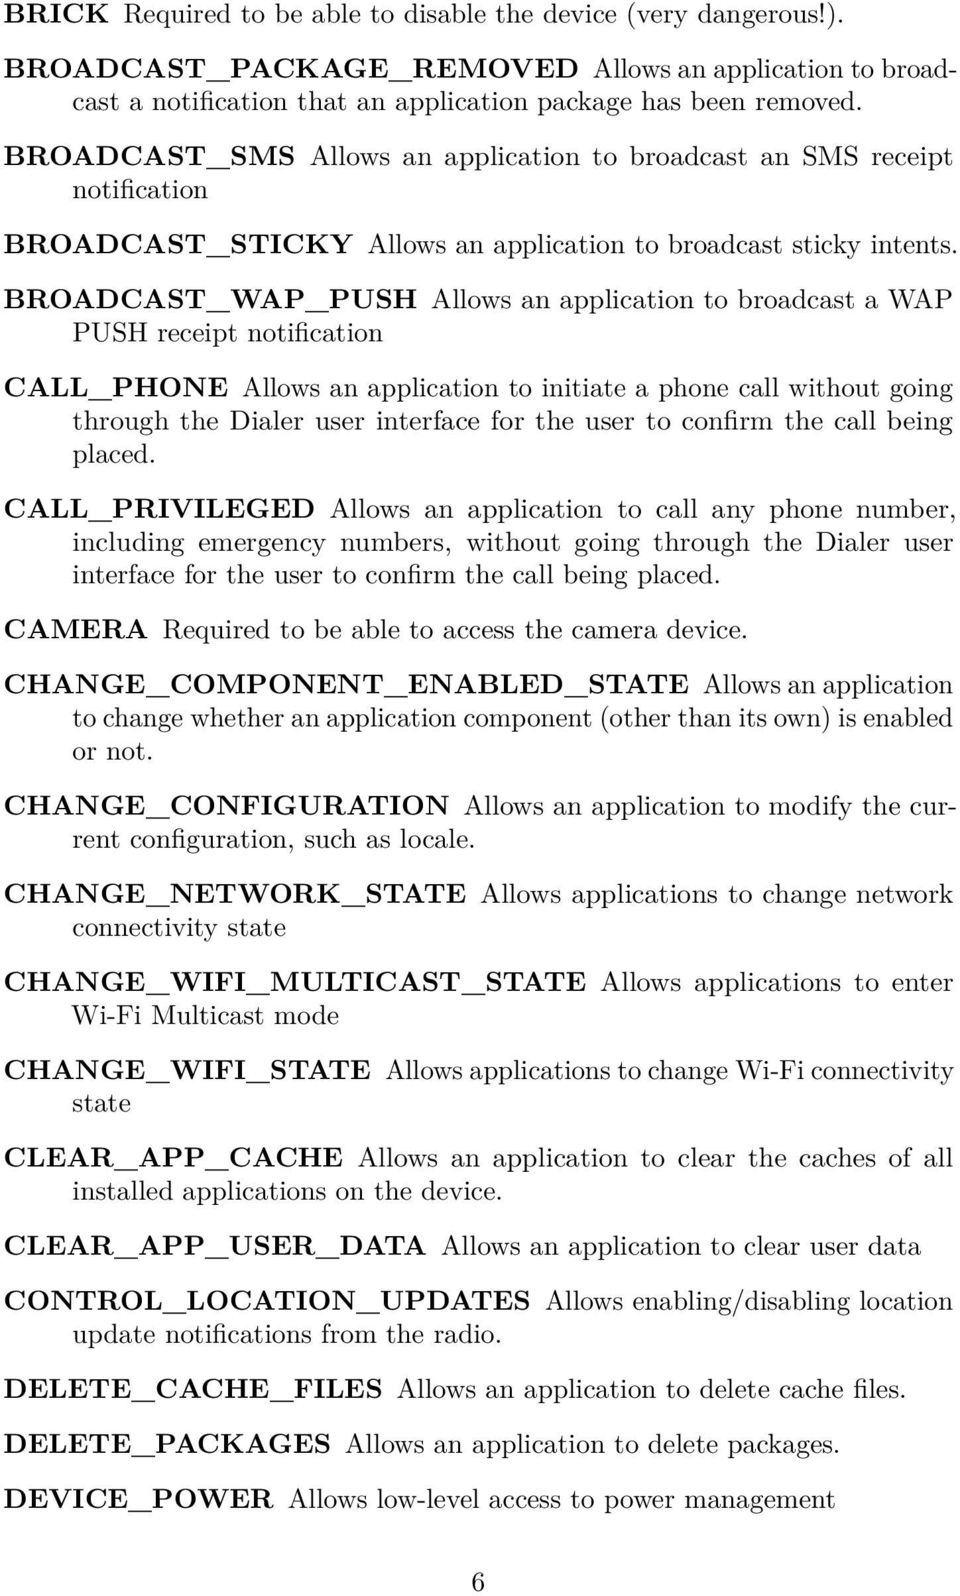 BROADCAST_WAP_PUSH Allows an application to broadcast a WAP PUSH receipt notification CALL_PHONE Allows an application to initiate a phone call without going through the Dialer user interface for the